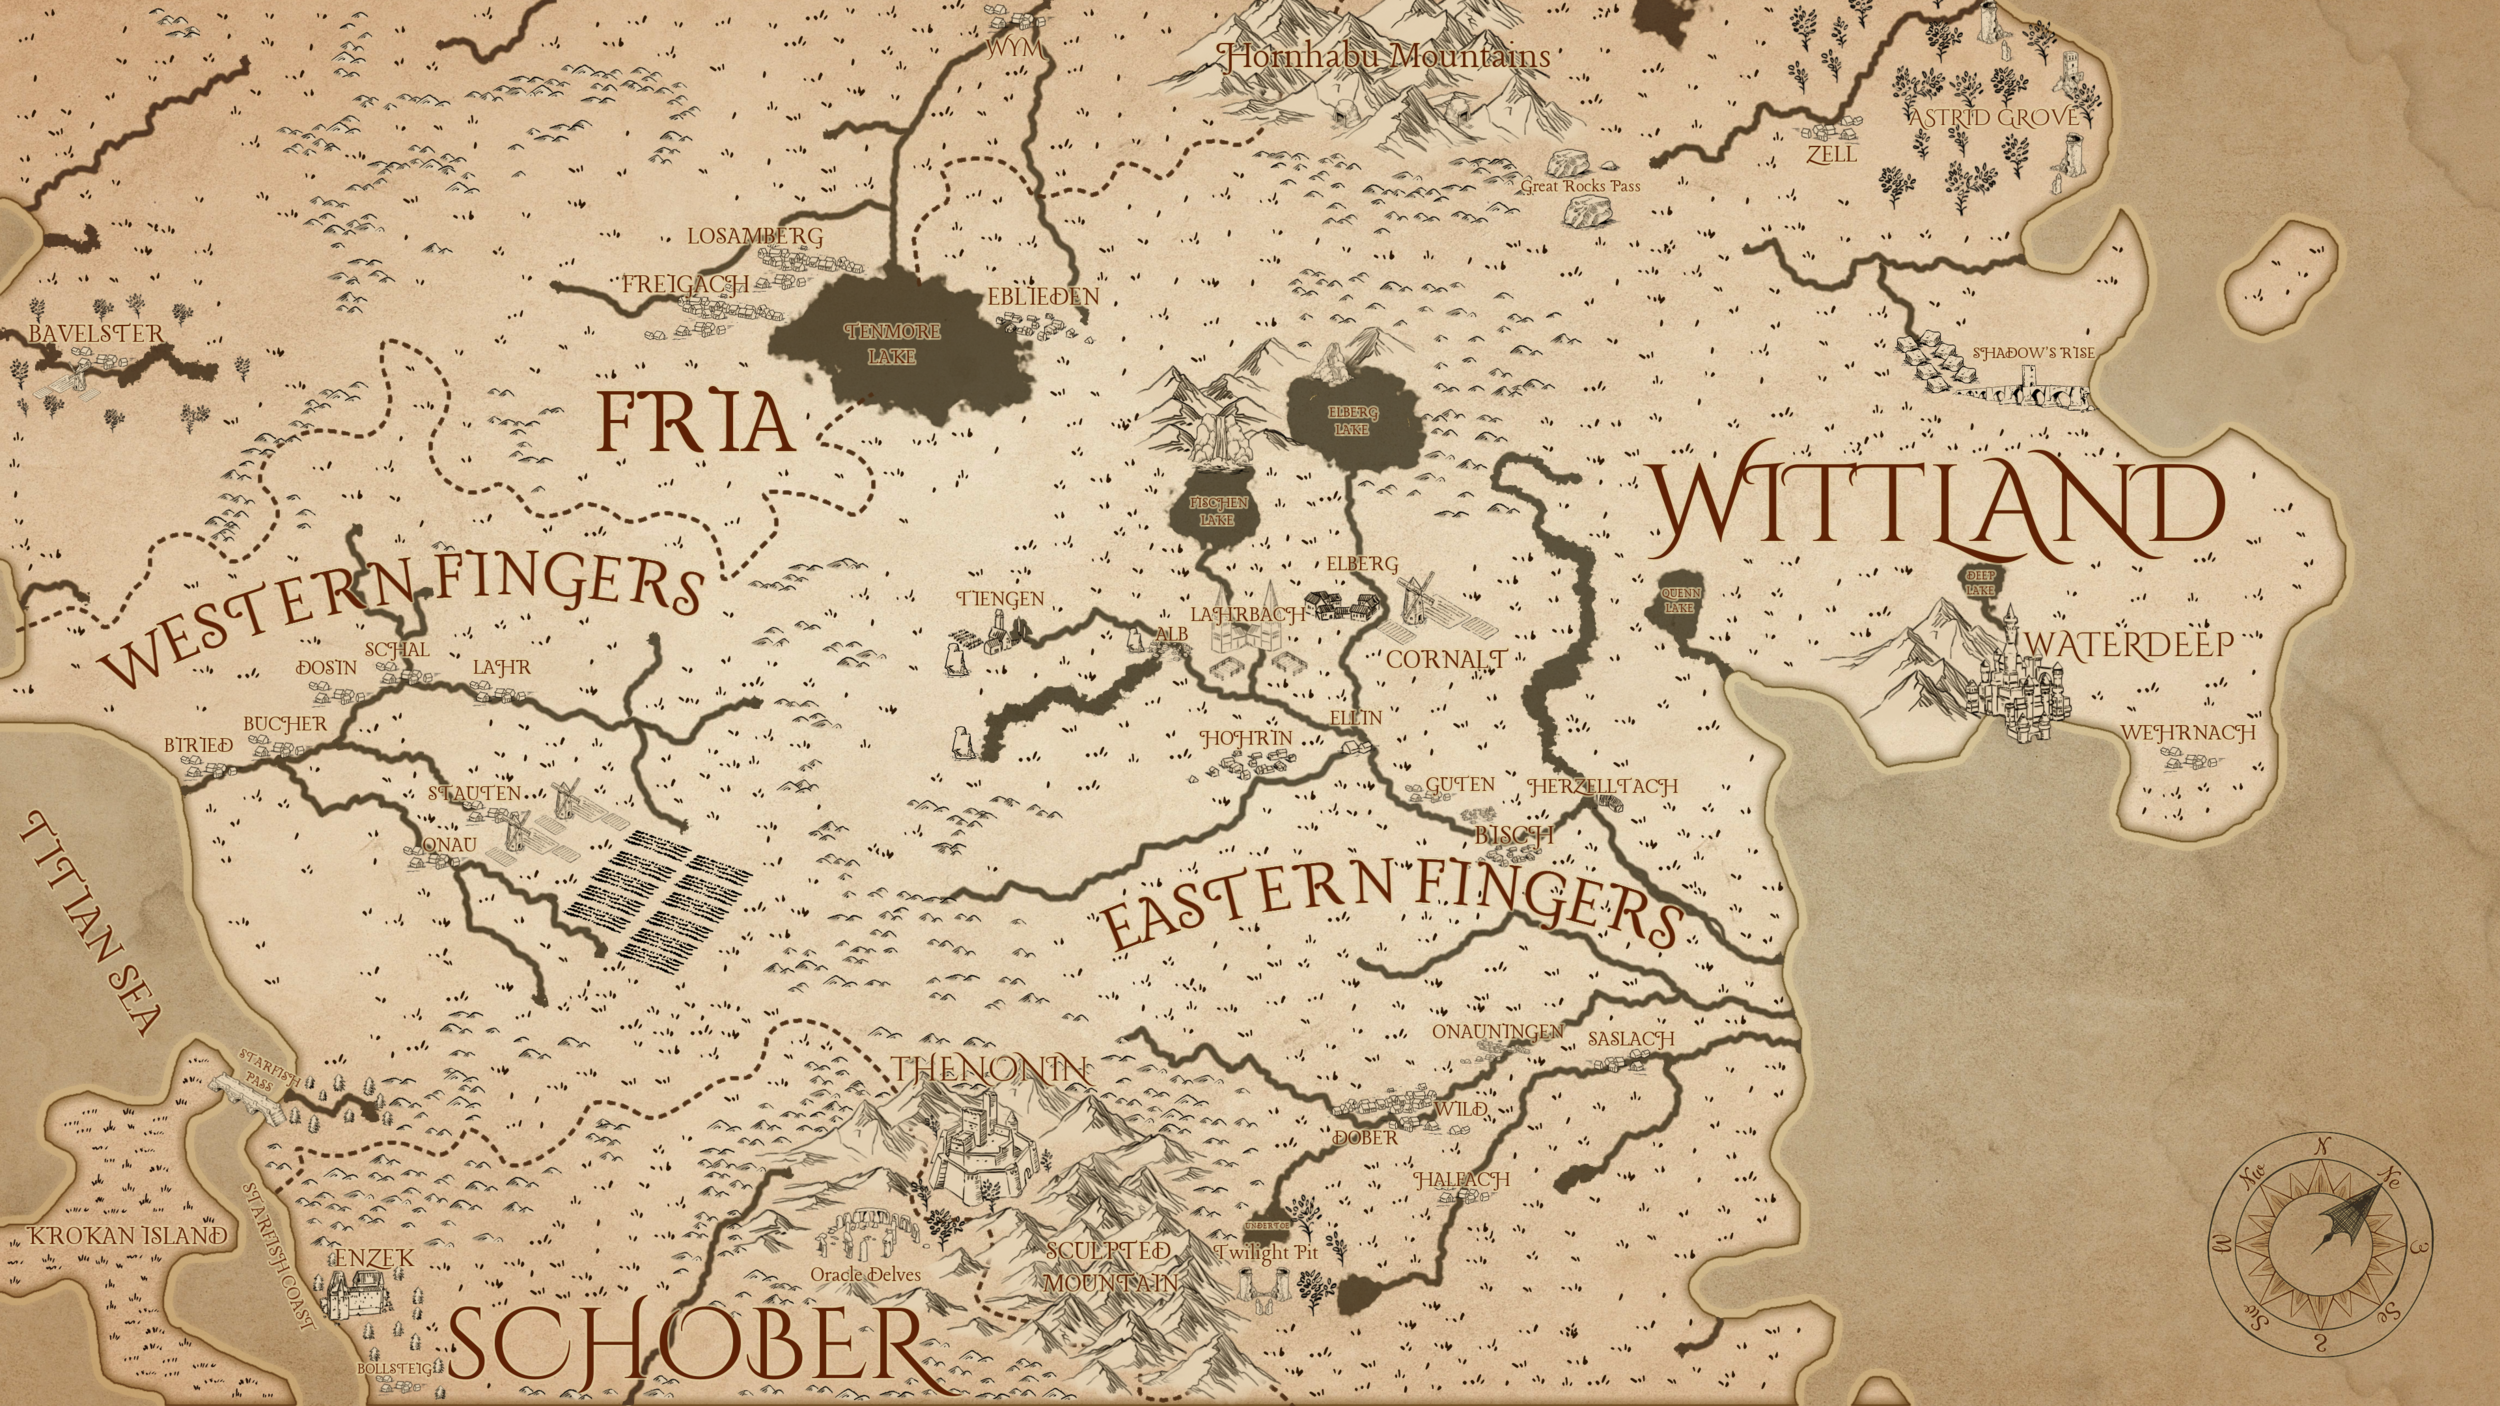 Wittland Map.png